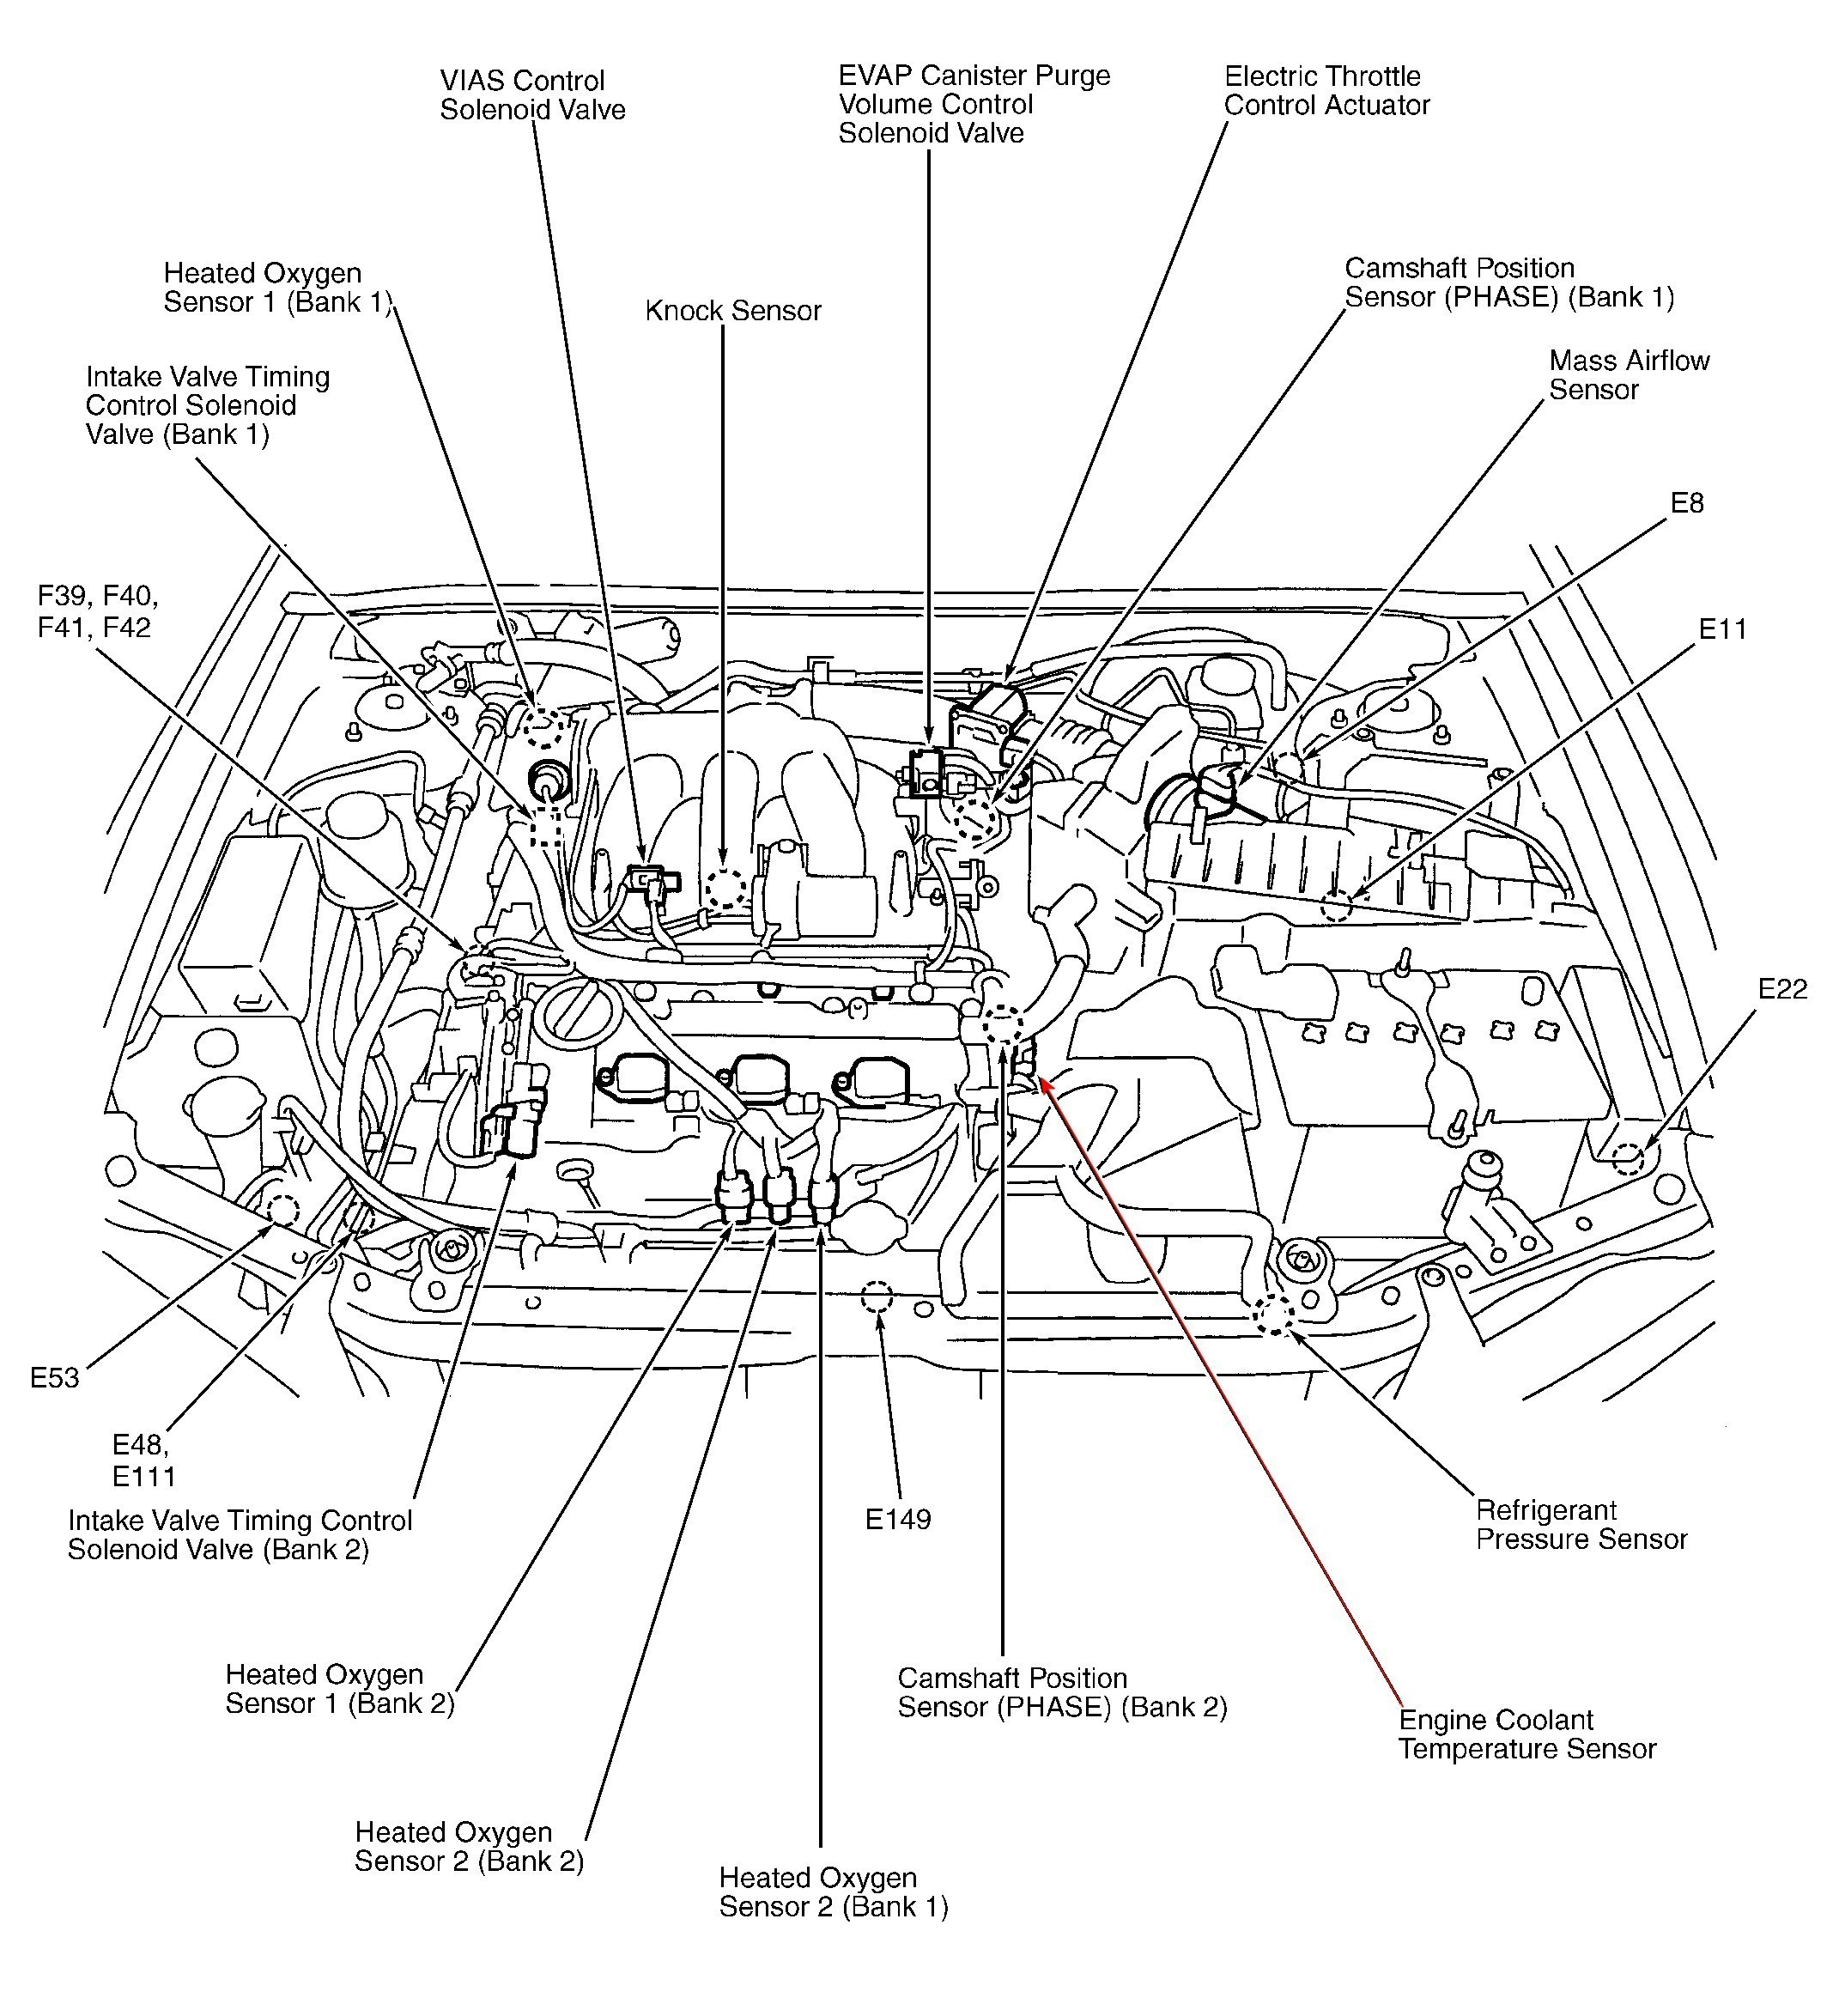 1997 Nissan Altima Engine Diagram 1998 Nissan Sentra Wiring Diagram Wiring Diagram Options Of 1997 Nissan Altima Engine Diagram 1995 Nissan Pathfinder Starter Wiring Diagram at Manuals Library